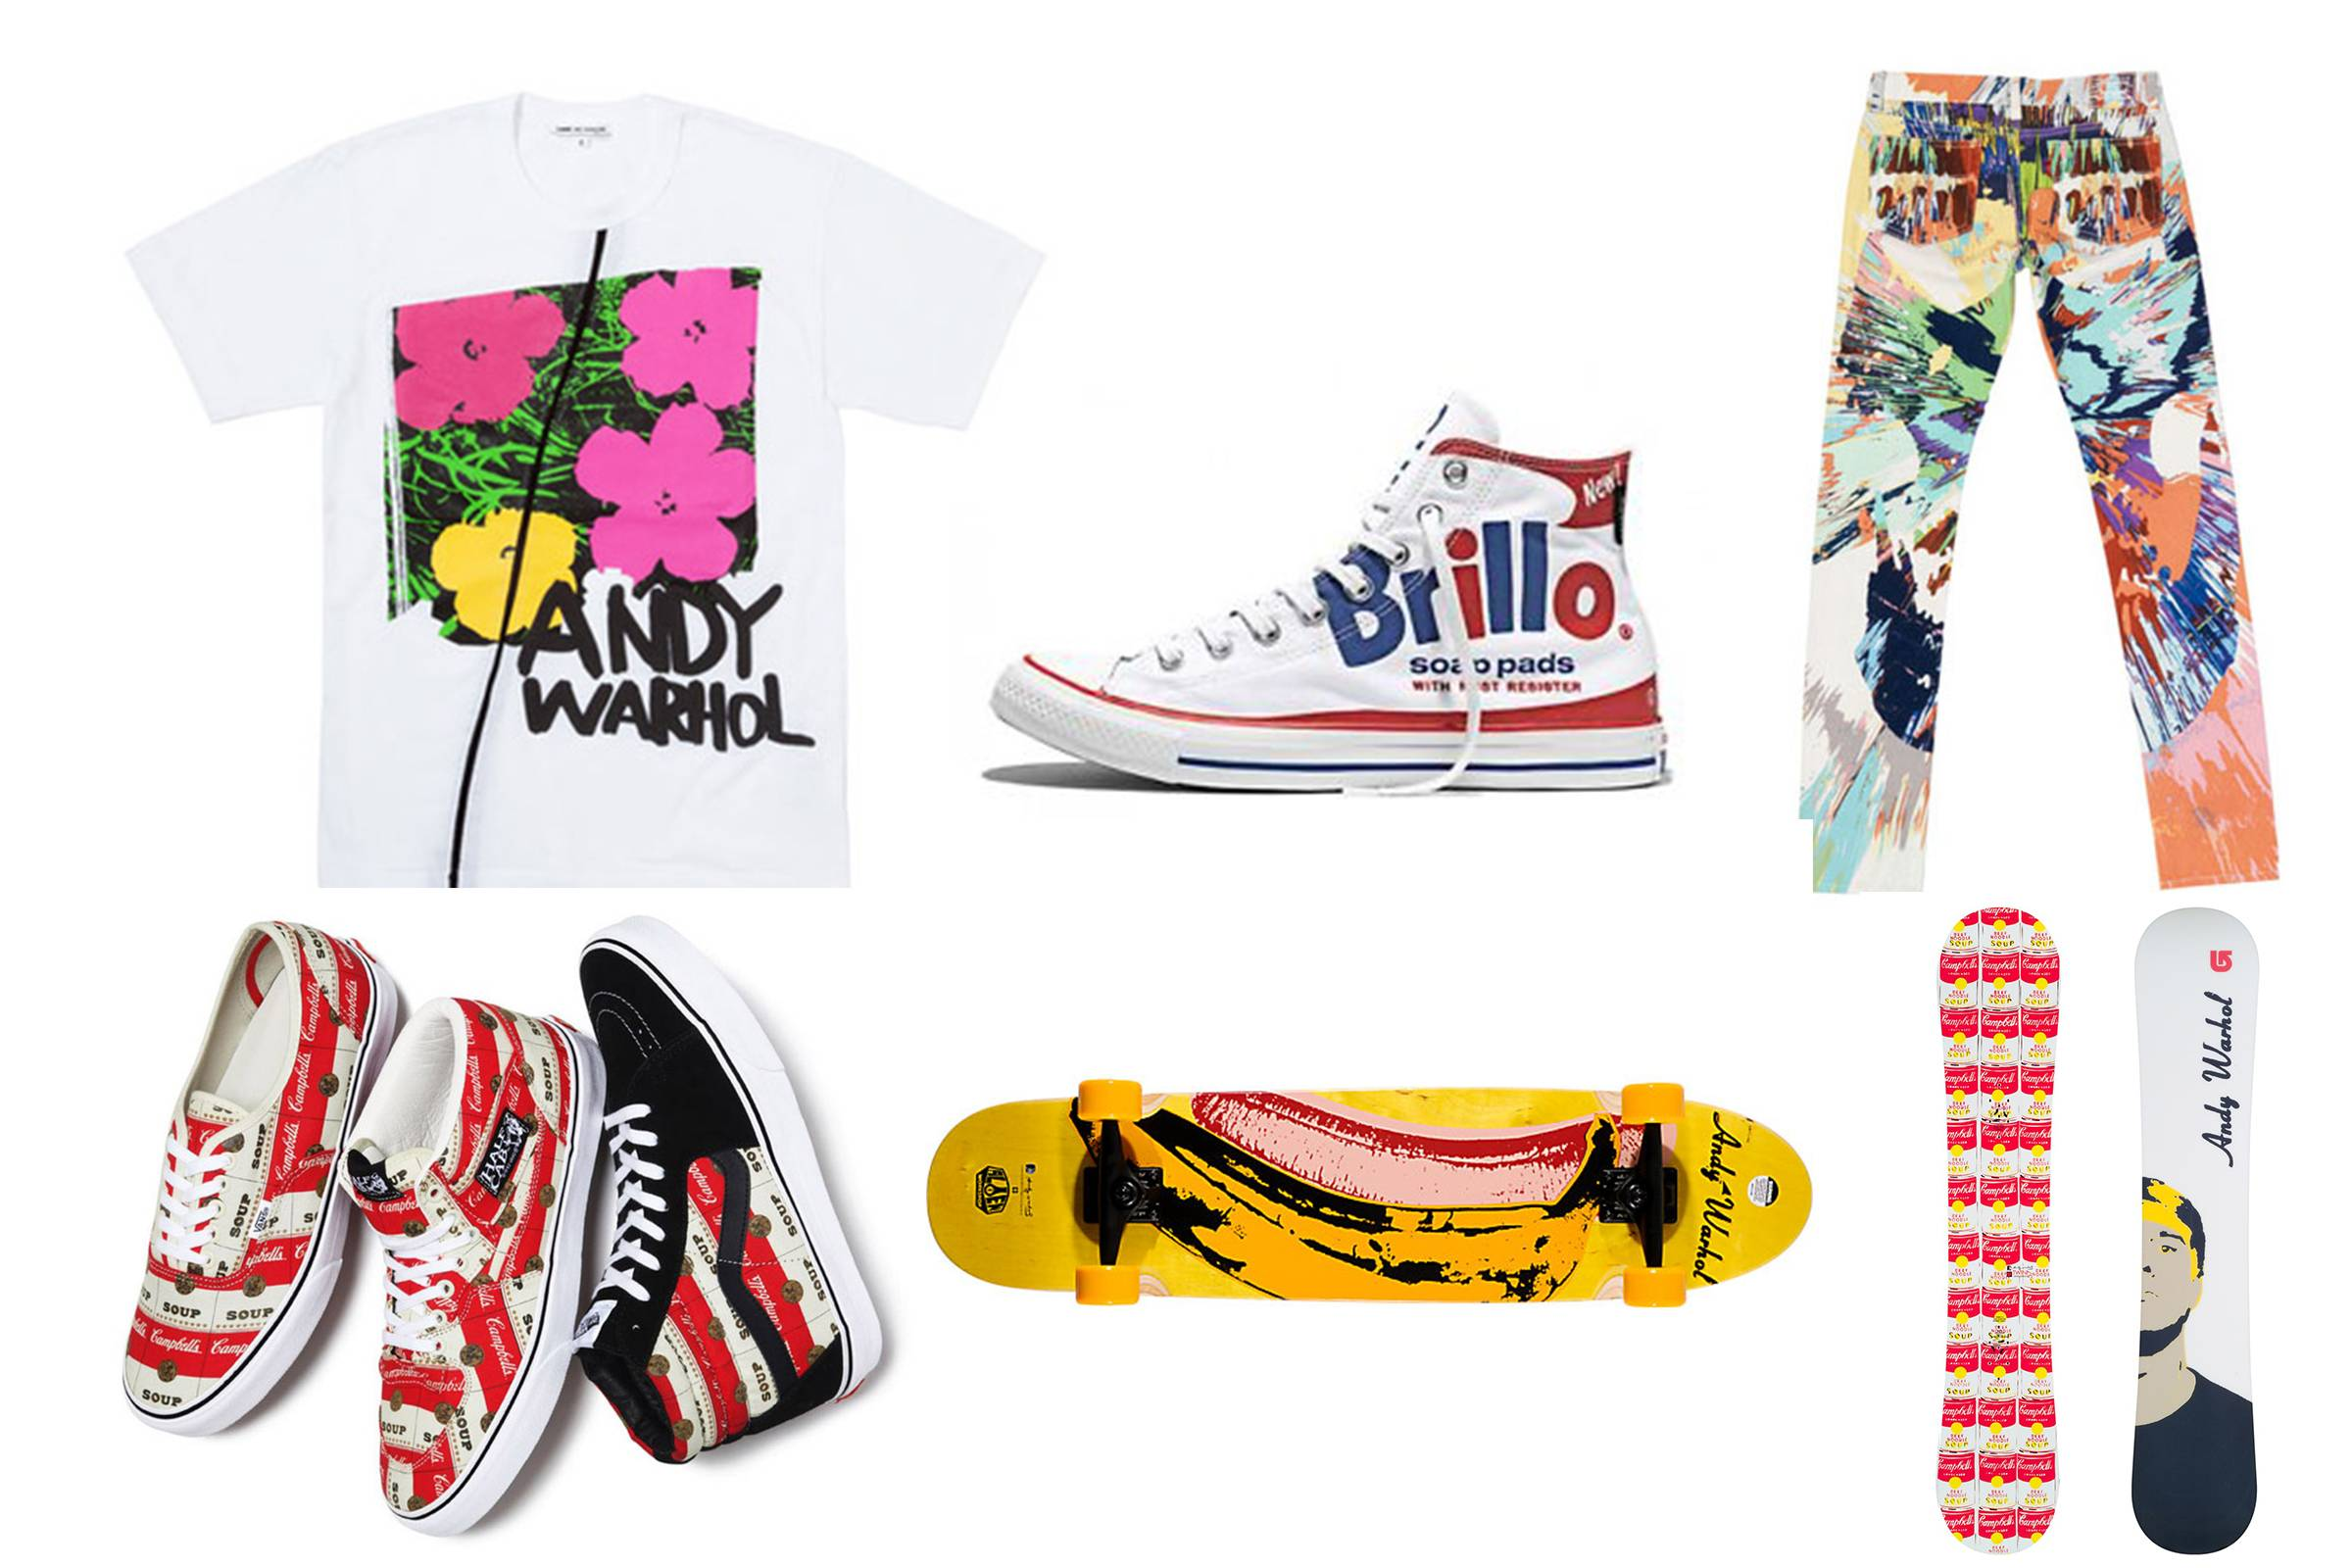 Clockwise from top left: Andy Warhol x Comme des Garçons, Andy Warhol x Converse, Damien Hirst x Levi's for the Andy Warhol Foundation, Andy Warhol x Burton, Alien Workshop for the Andy Warhol Foundation, Campbell's x Supreme x Vans